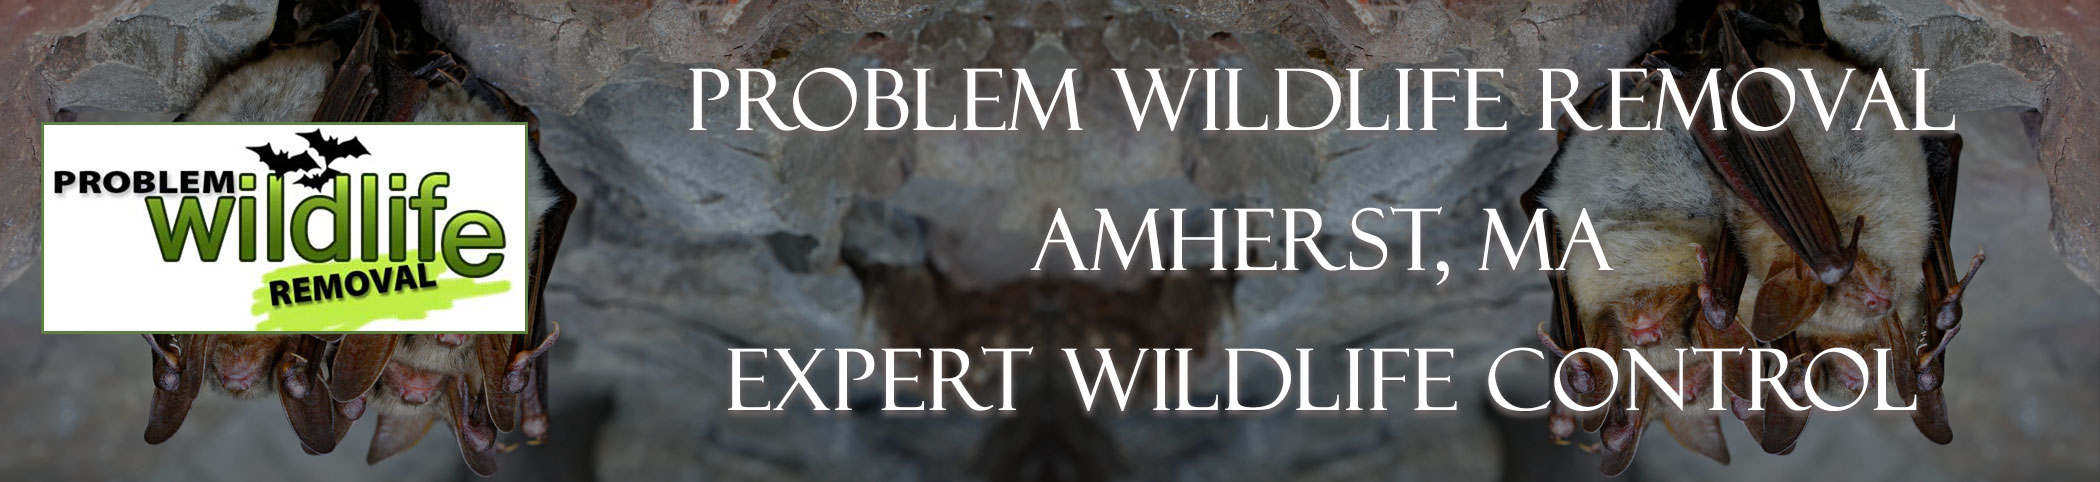 bat removal and bat exclusion by problem wildlife removal Amherst ma